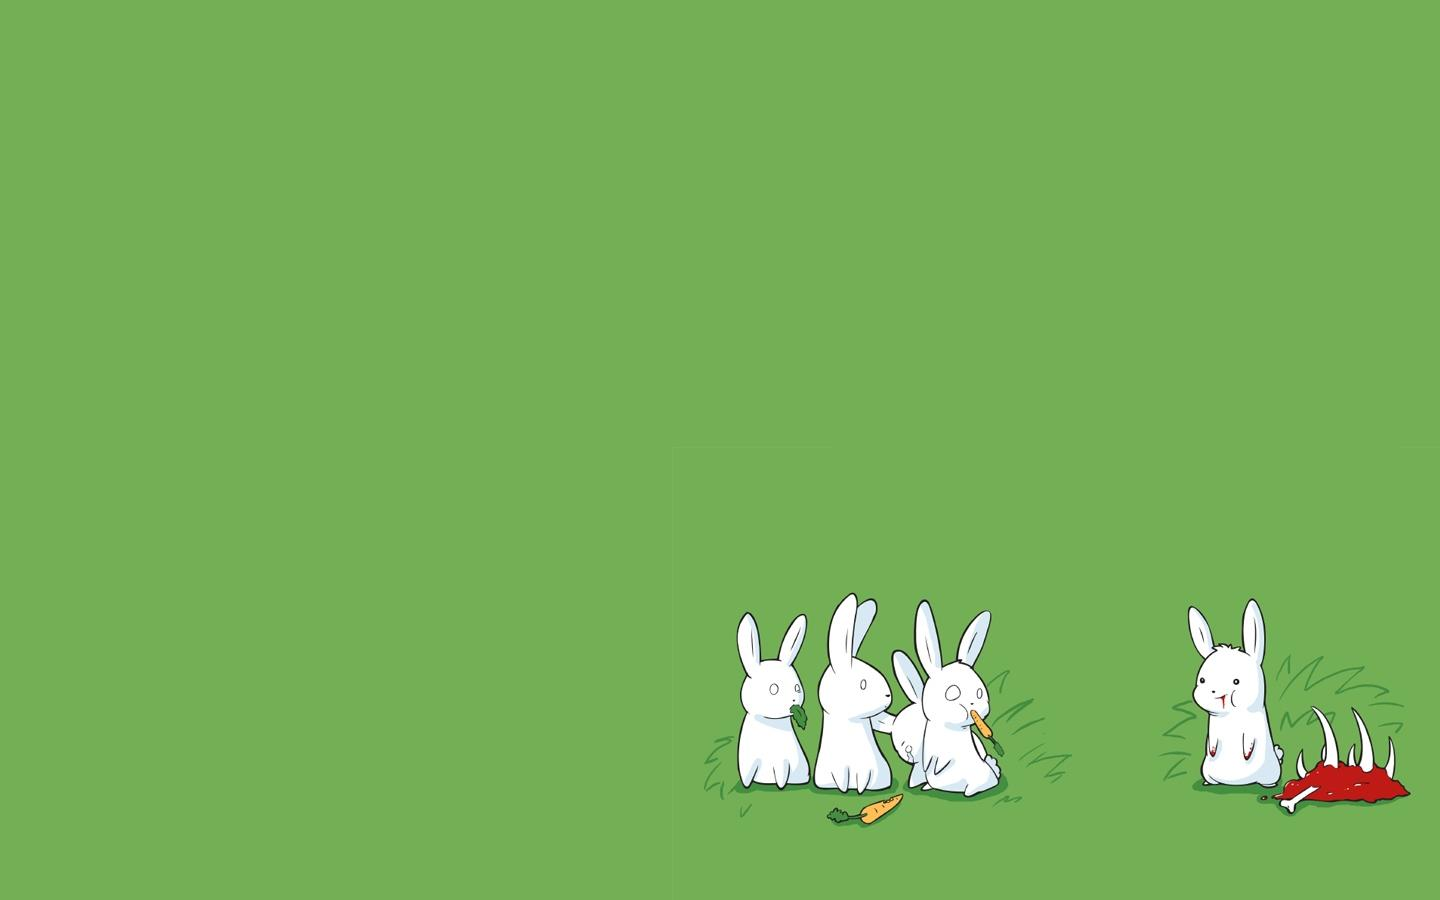 Happy bunny wallpapers   Wallpaper Bit 1440x900